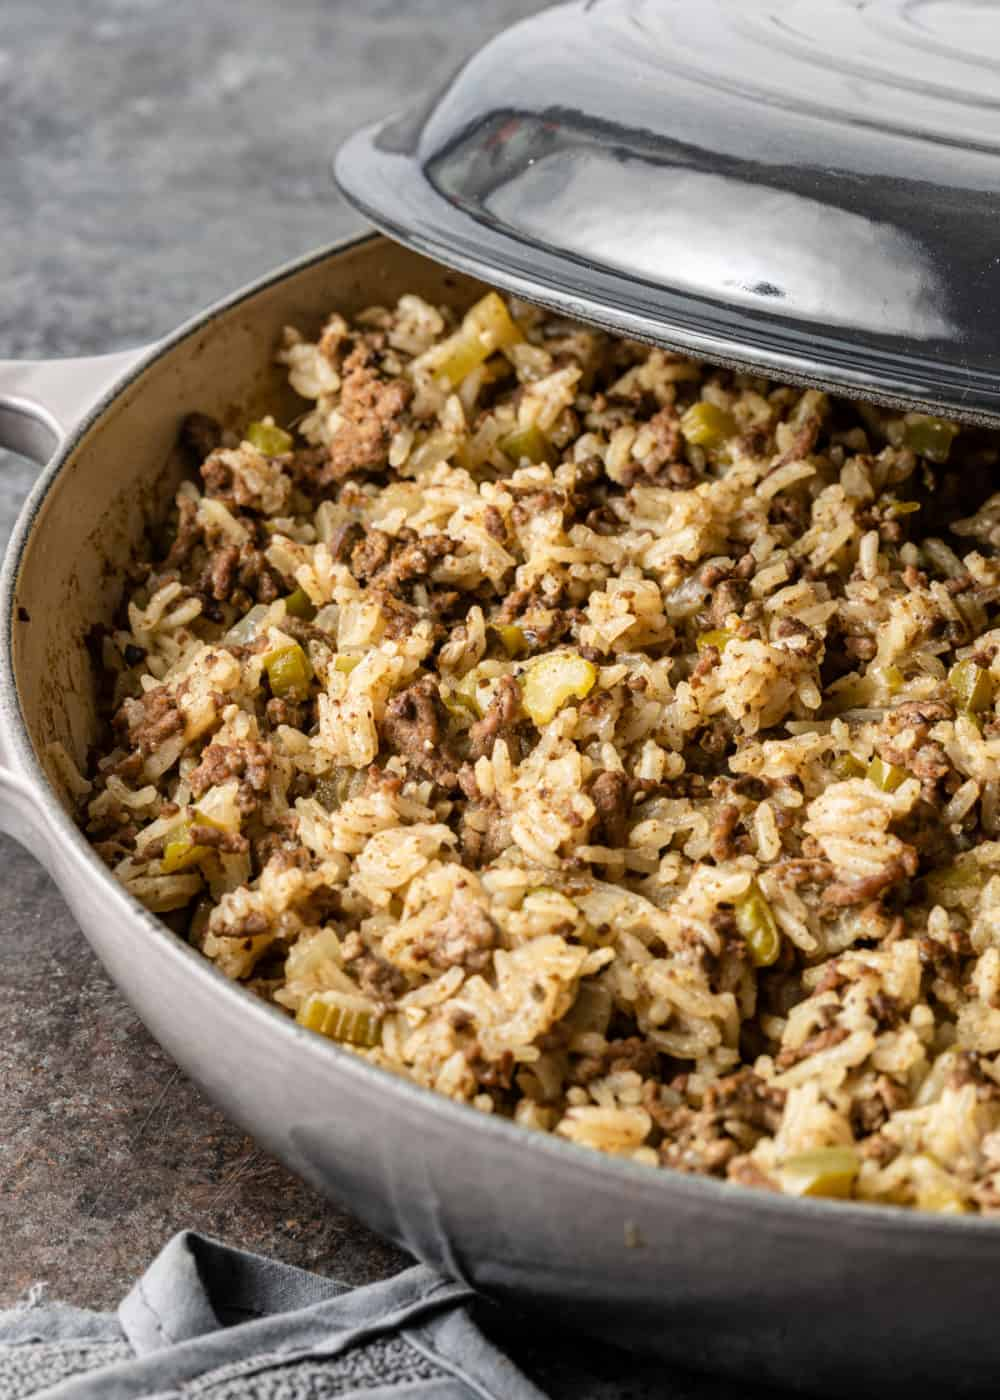 basmati rice, ground beef, celery, onion, and spicy seasonings combined and cooked in saute pan